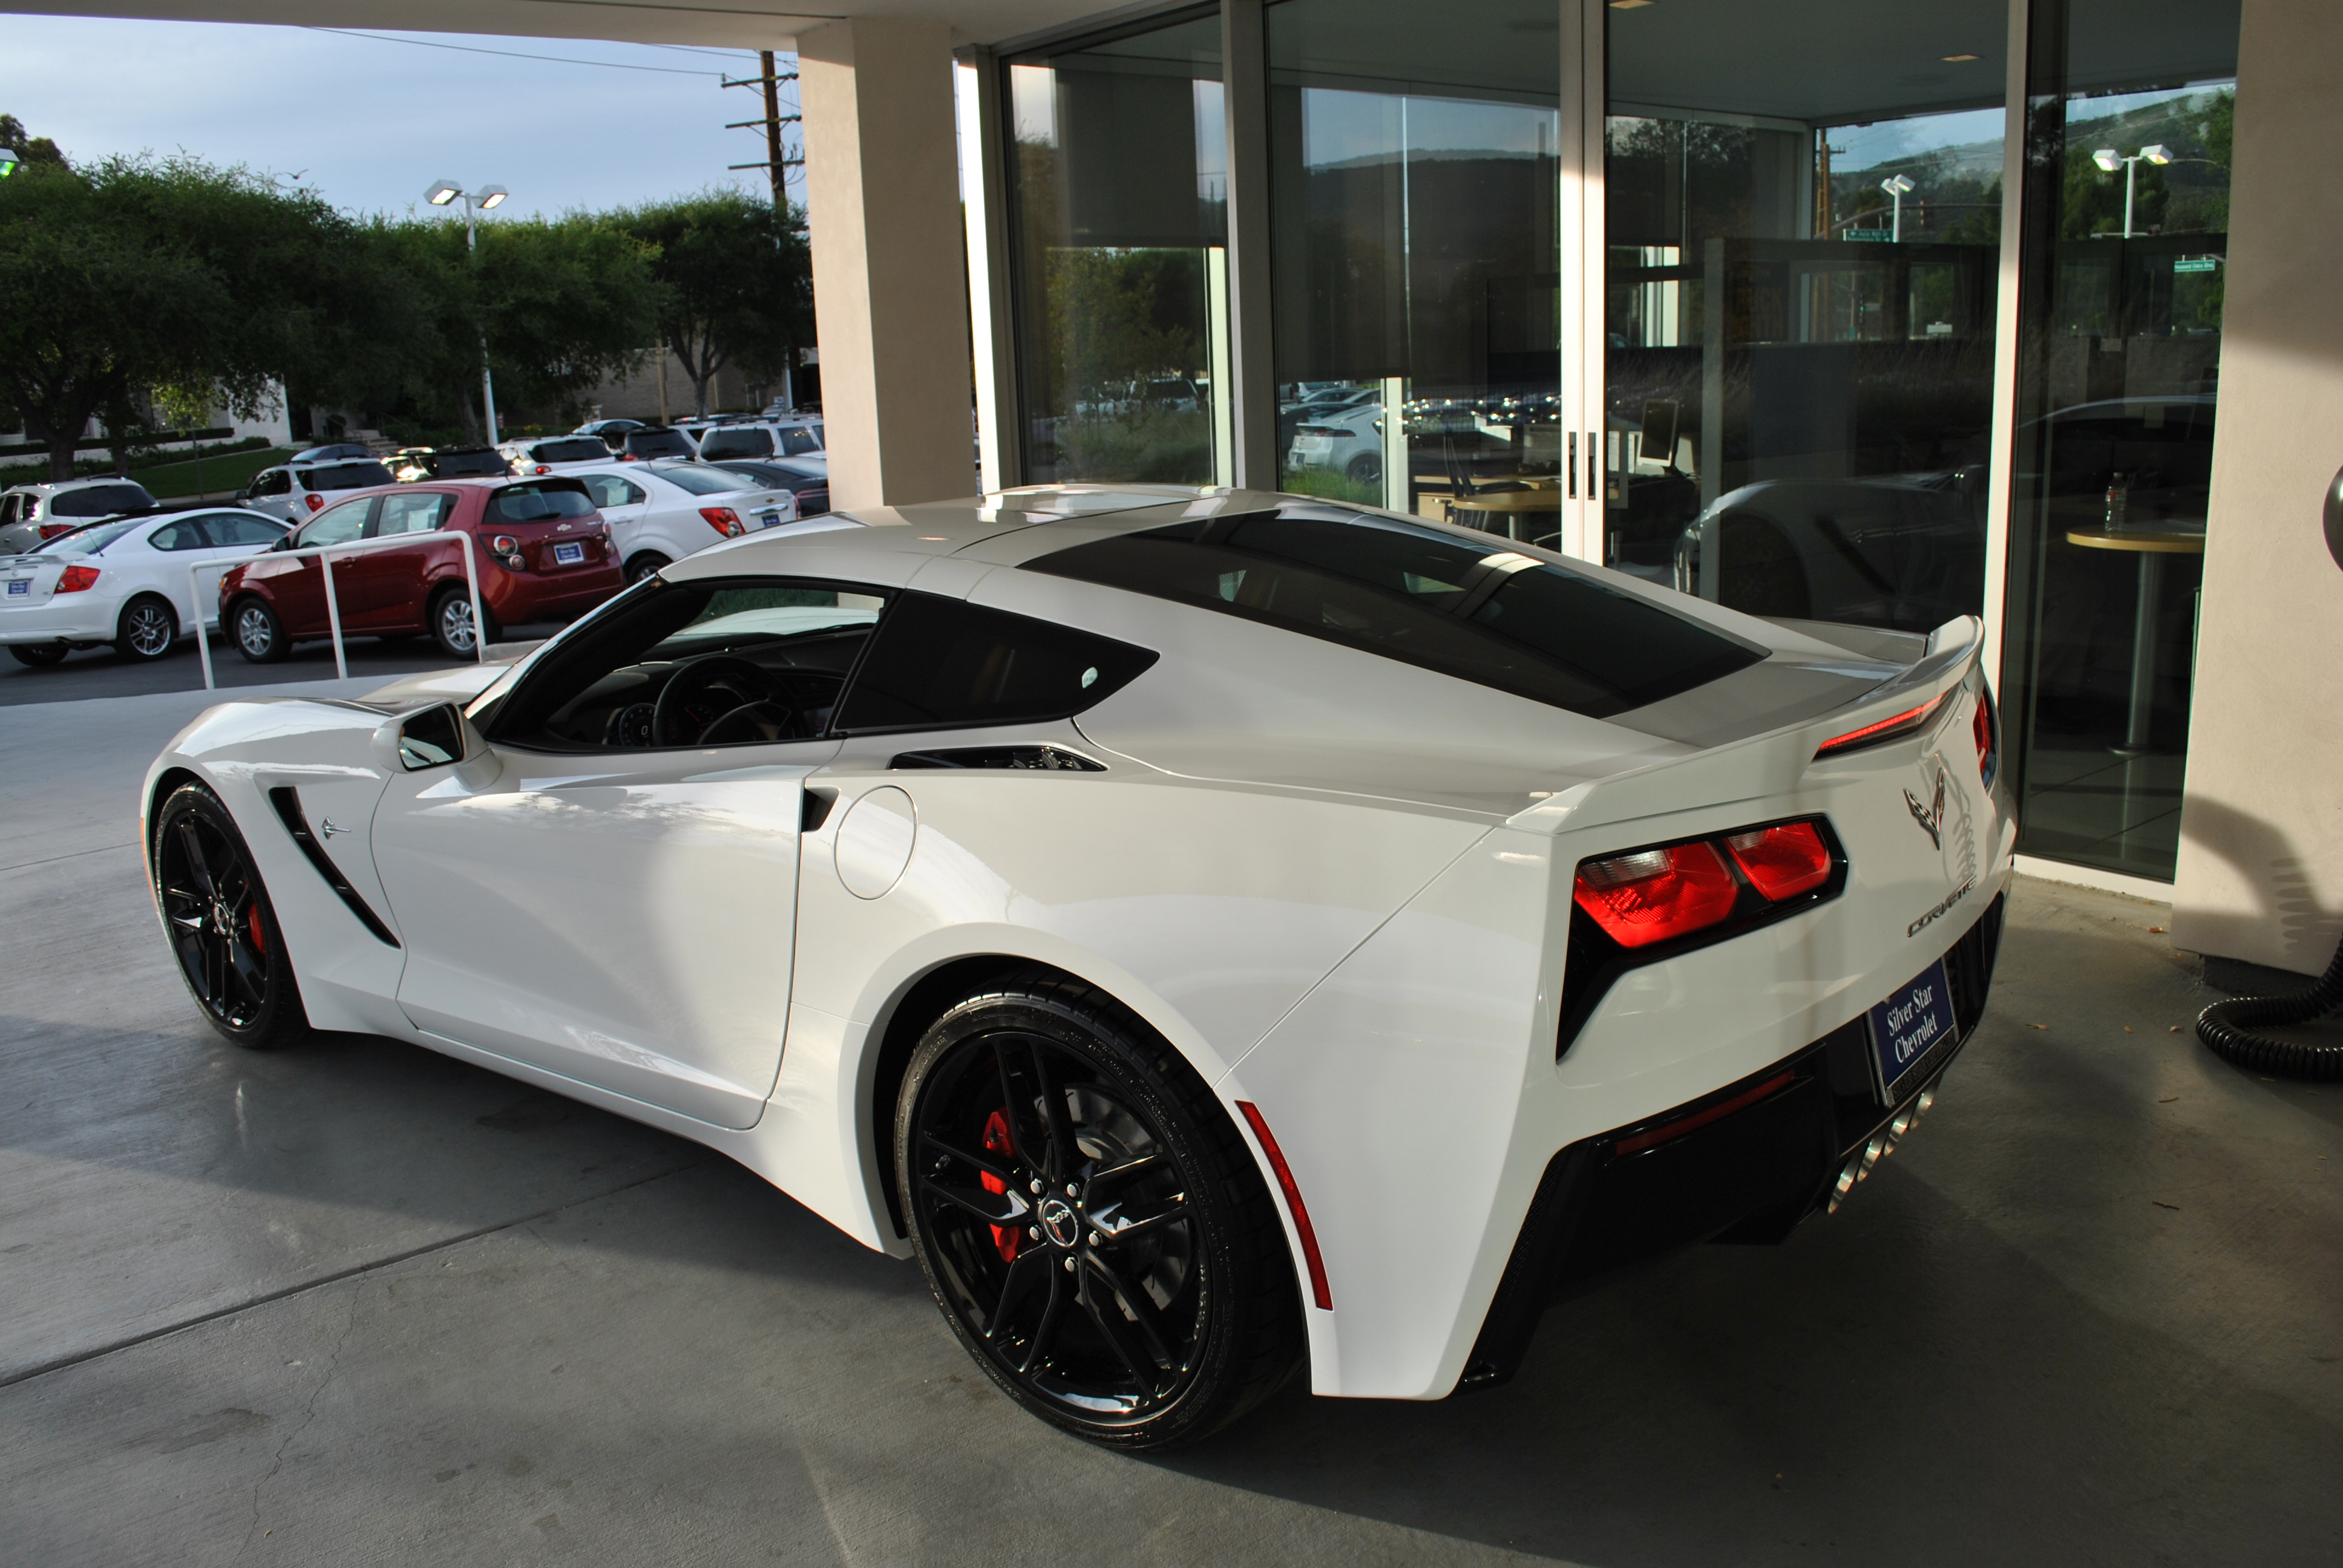 The official Arctic White Stingray Corvette Photo Thread  Page 32